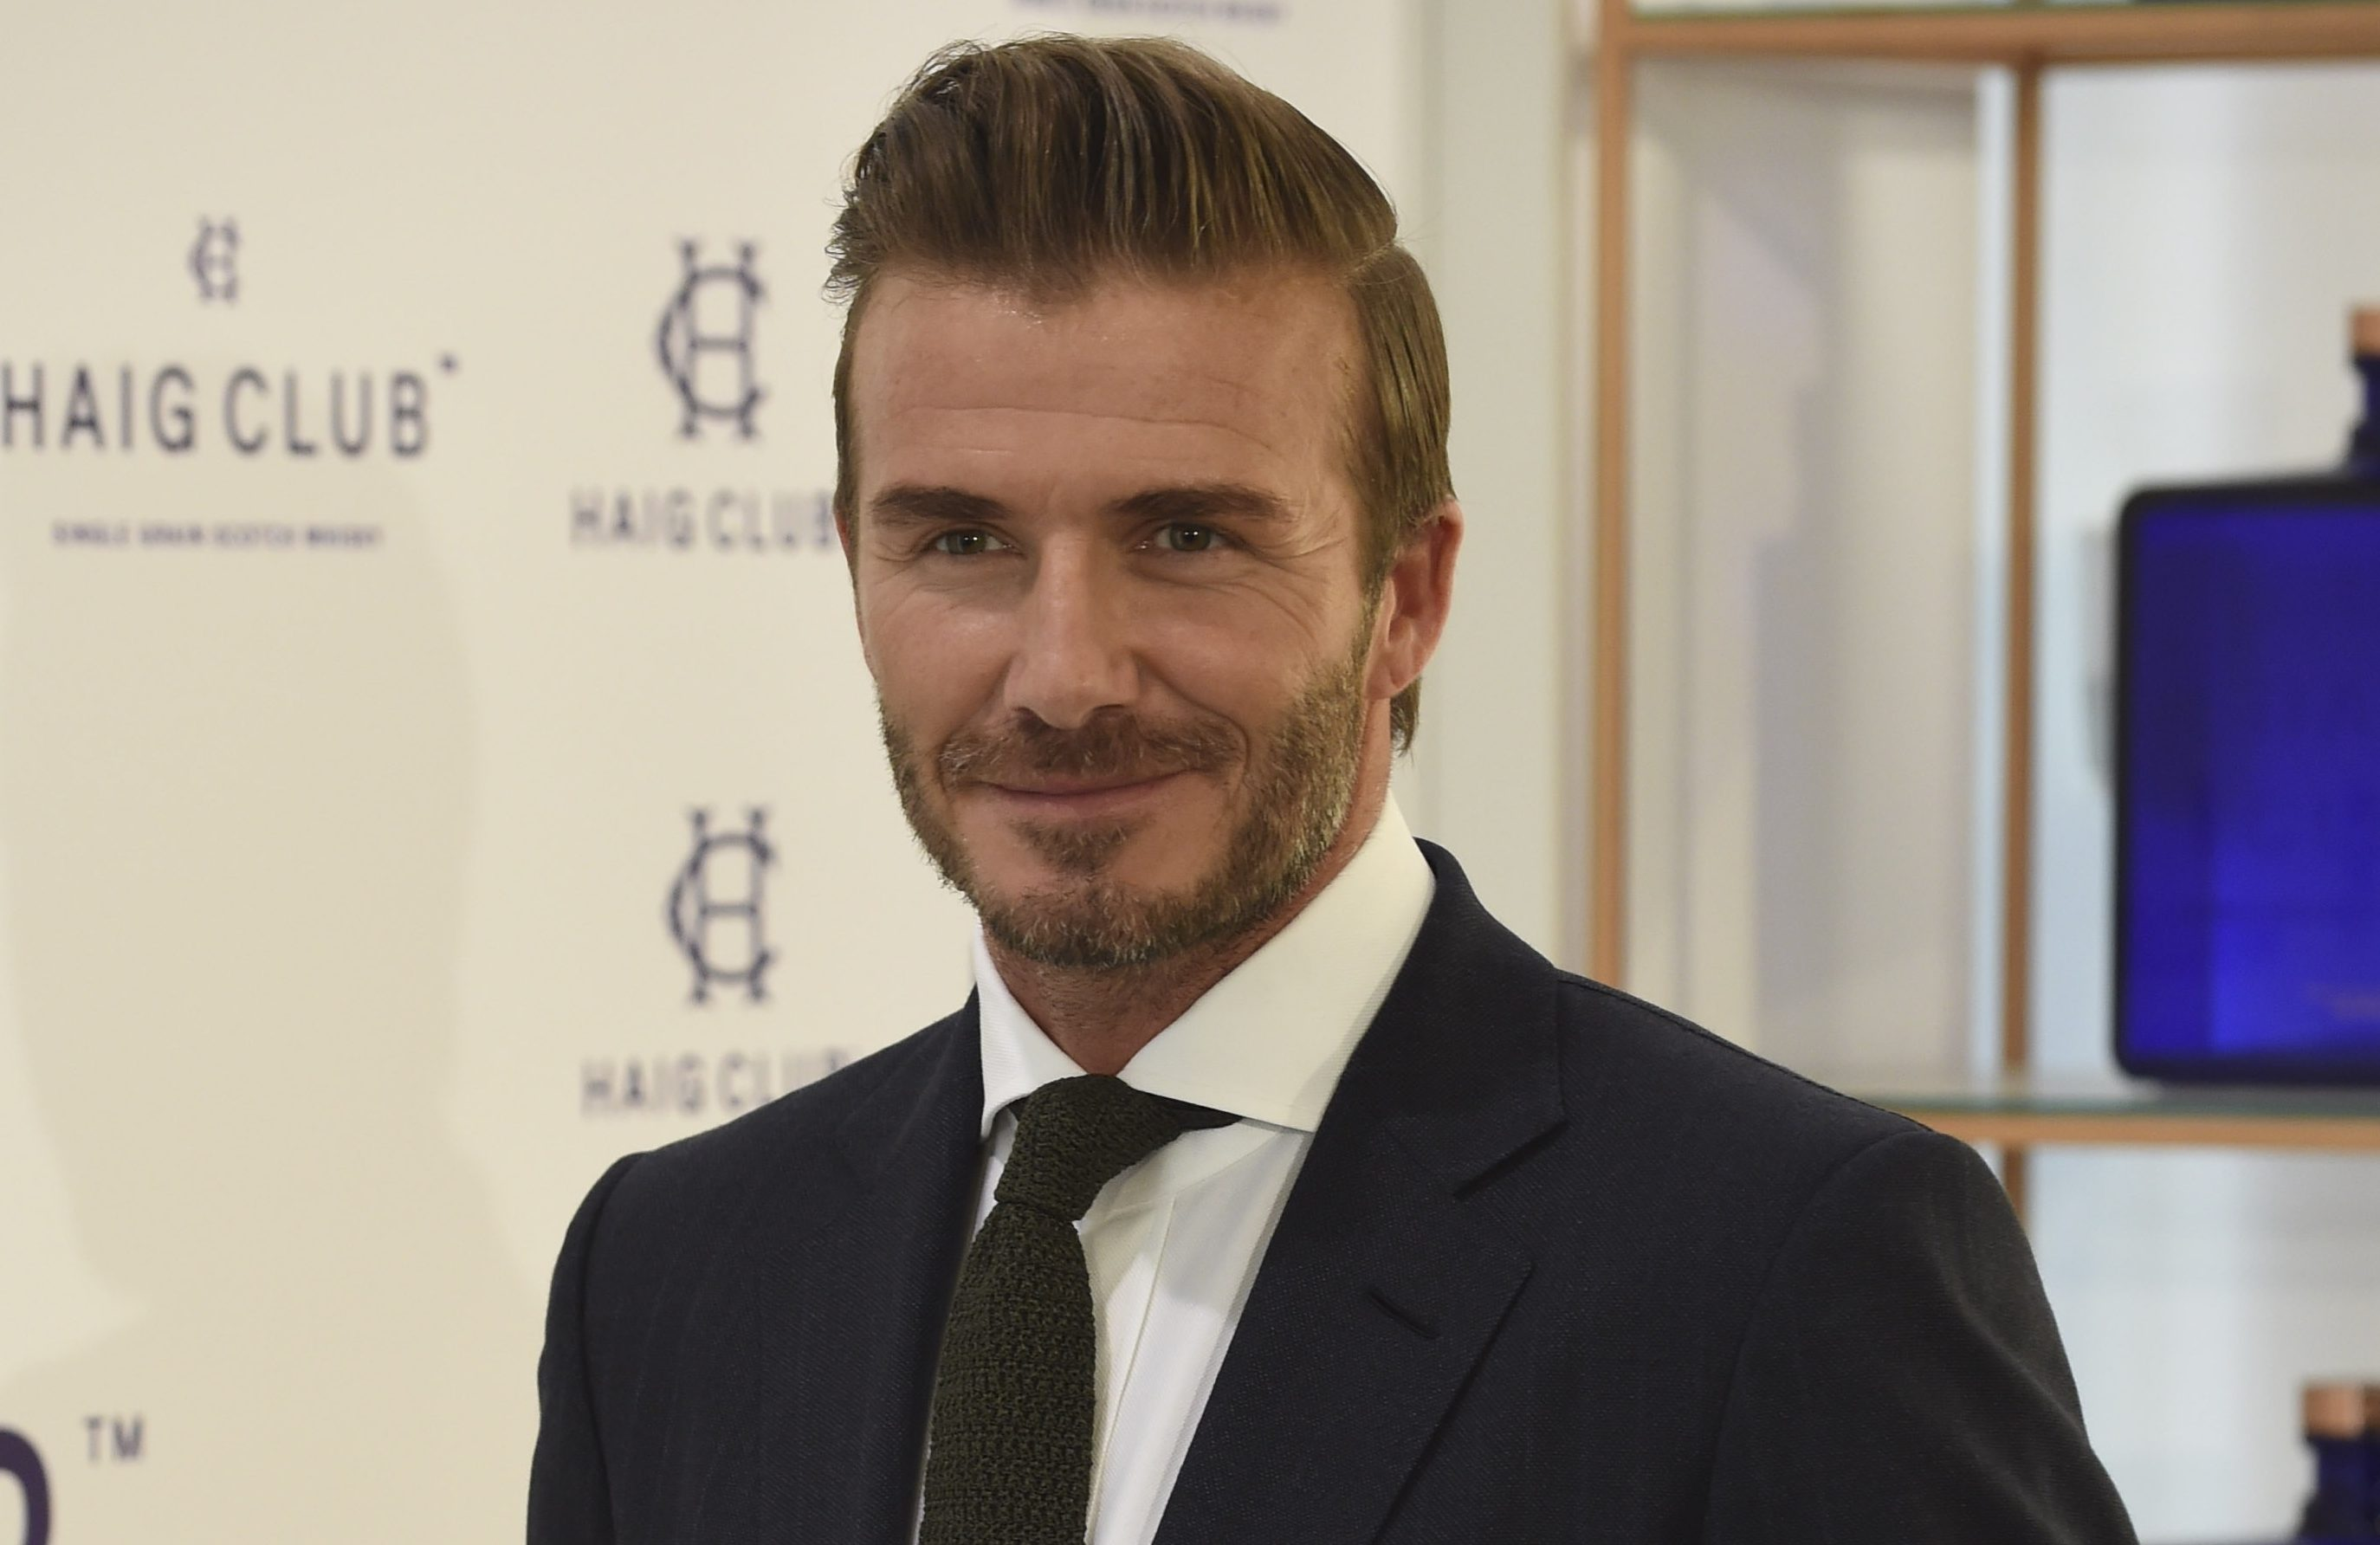 David Beckham shares idyllic holiday pic with daughter Harper